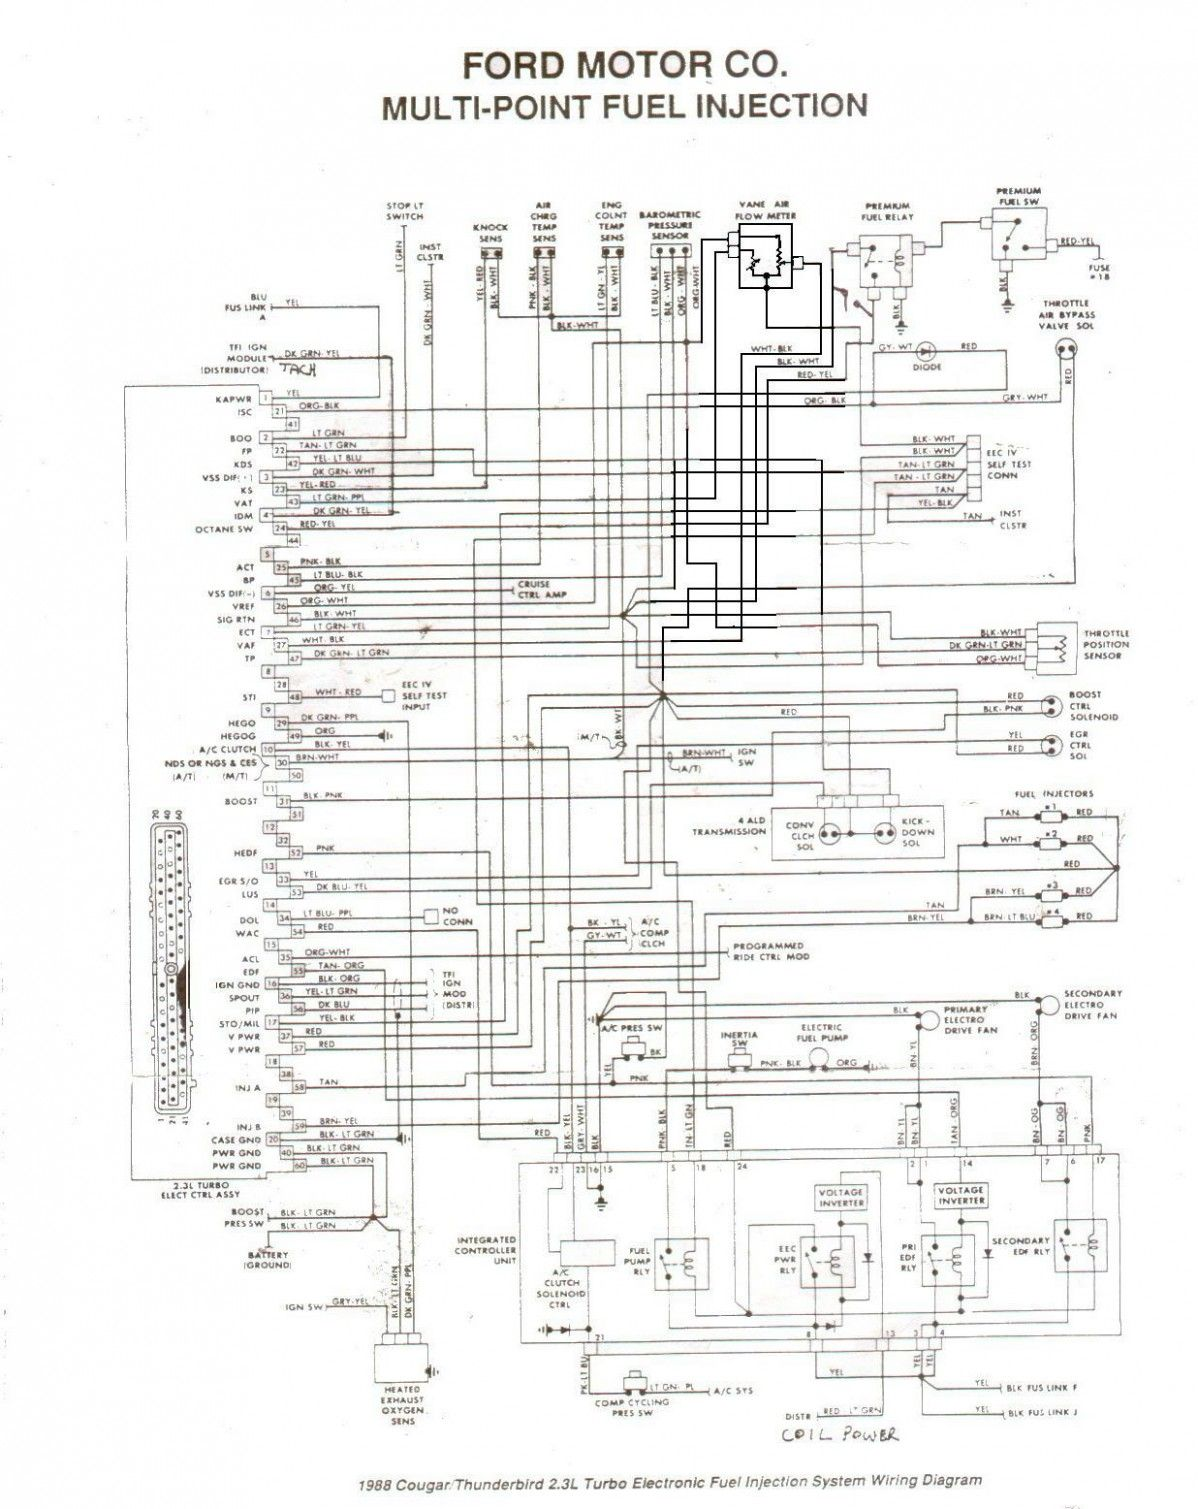 1999 corvette wiring diagram engine wiring diagram for 5 ford ranger turbo di 2020  dengan gambar   engine wiring diagram for 5 ford ranger